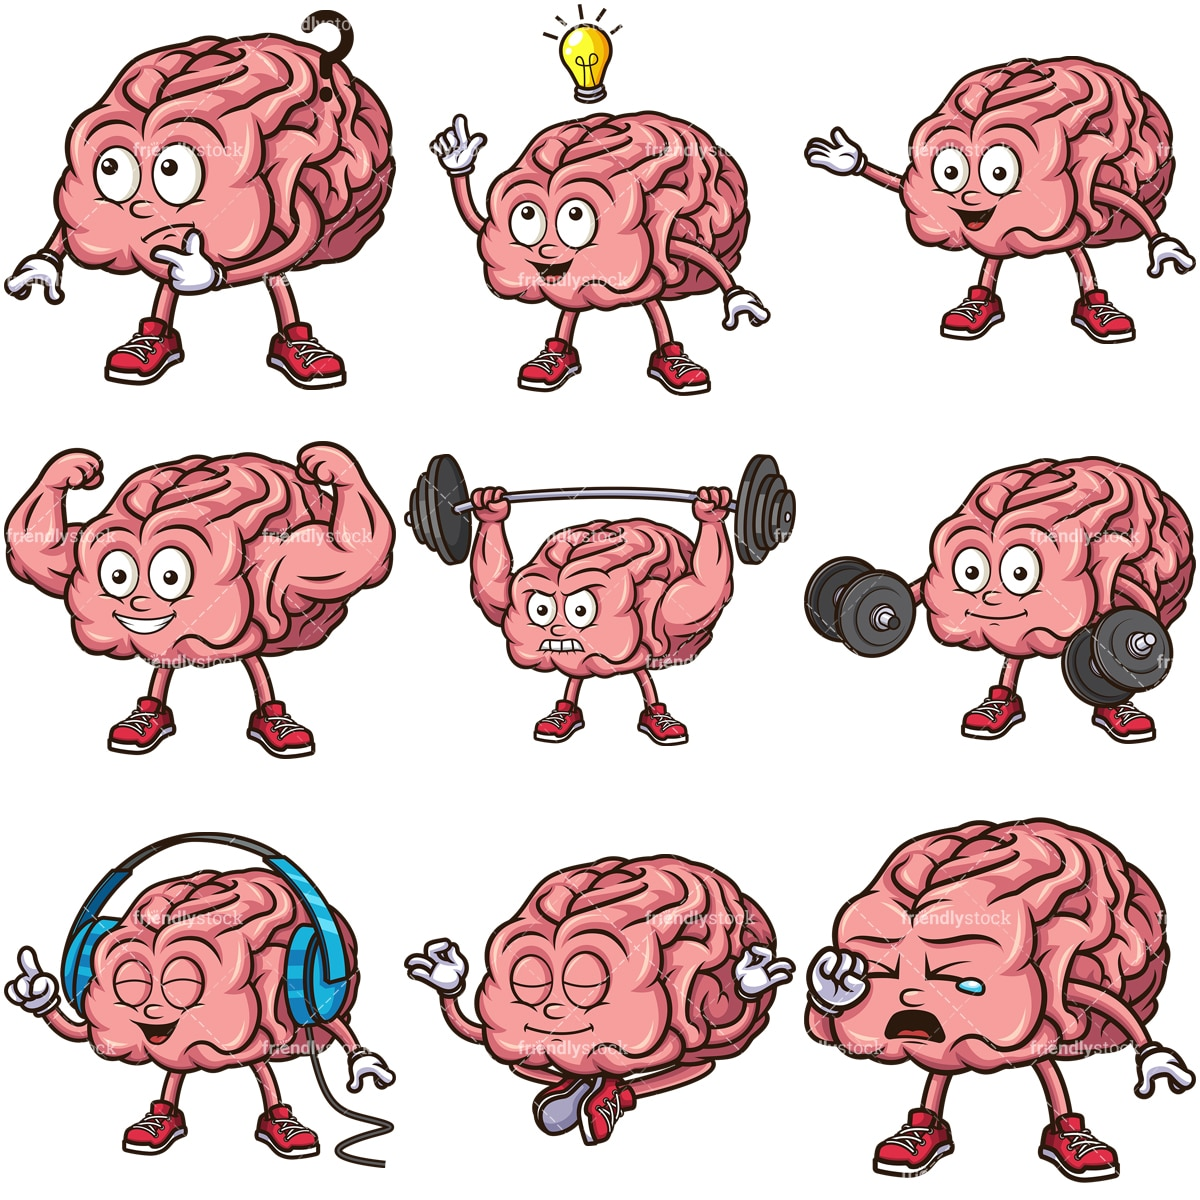 Cute Brain Cartoon Character Vector Clipart - FriendlyStock